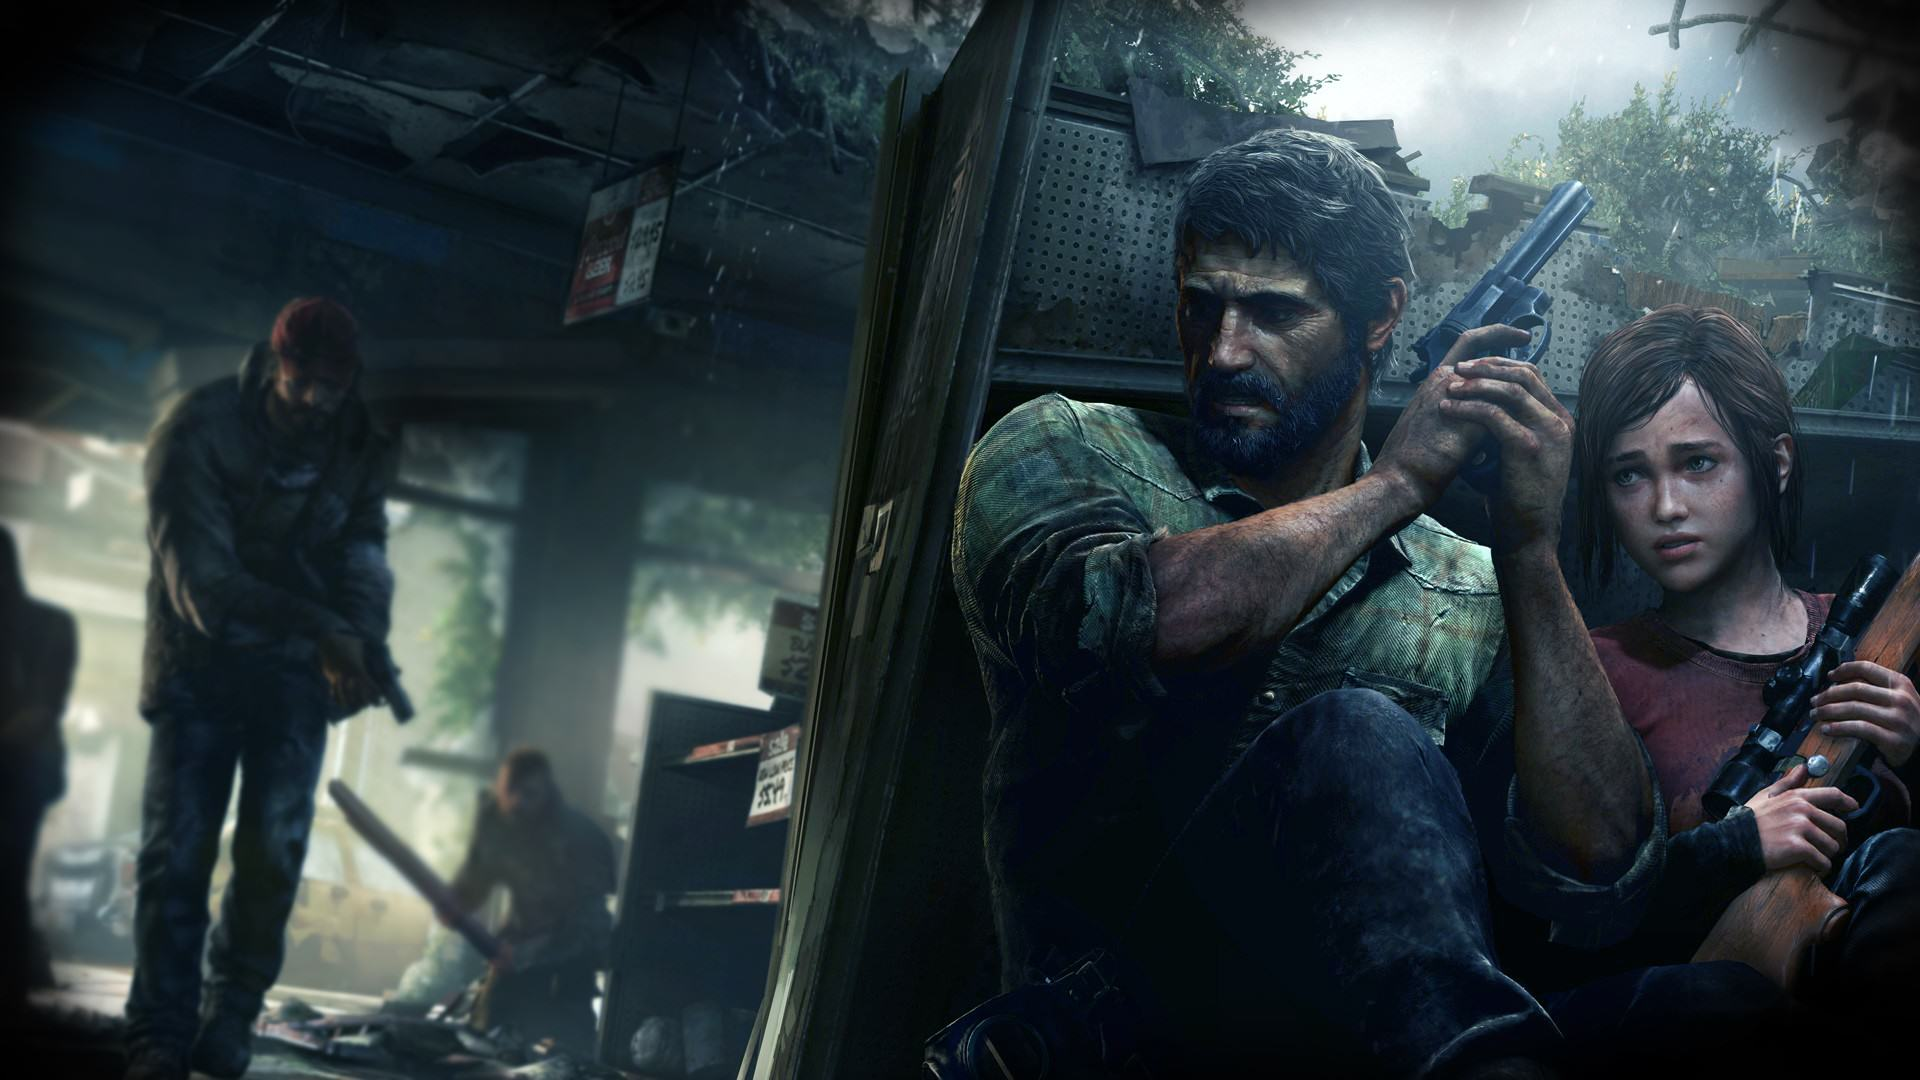 Naughty Dog Are Dropping Major Hints At More Games On PS4 UNILAD whsa0lrdy41we0eyhh6m33305